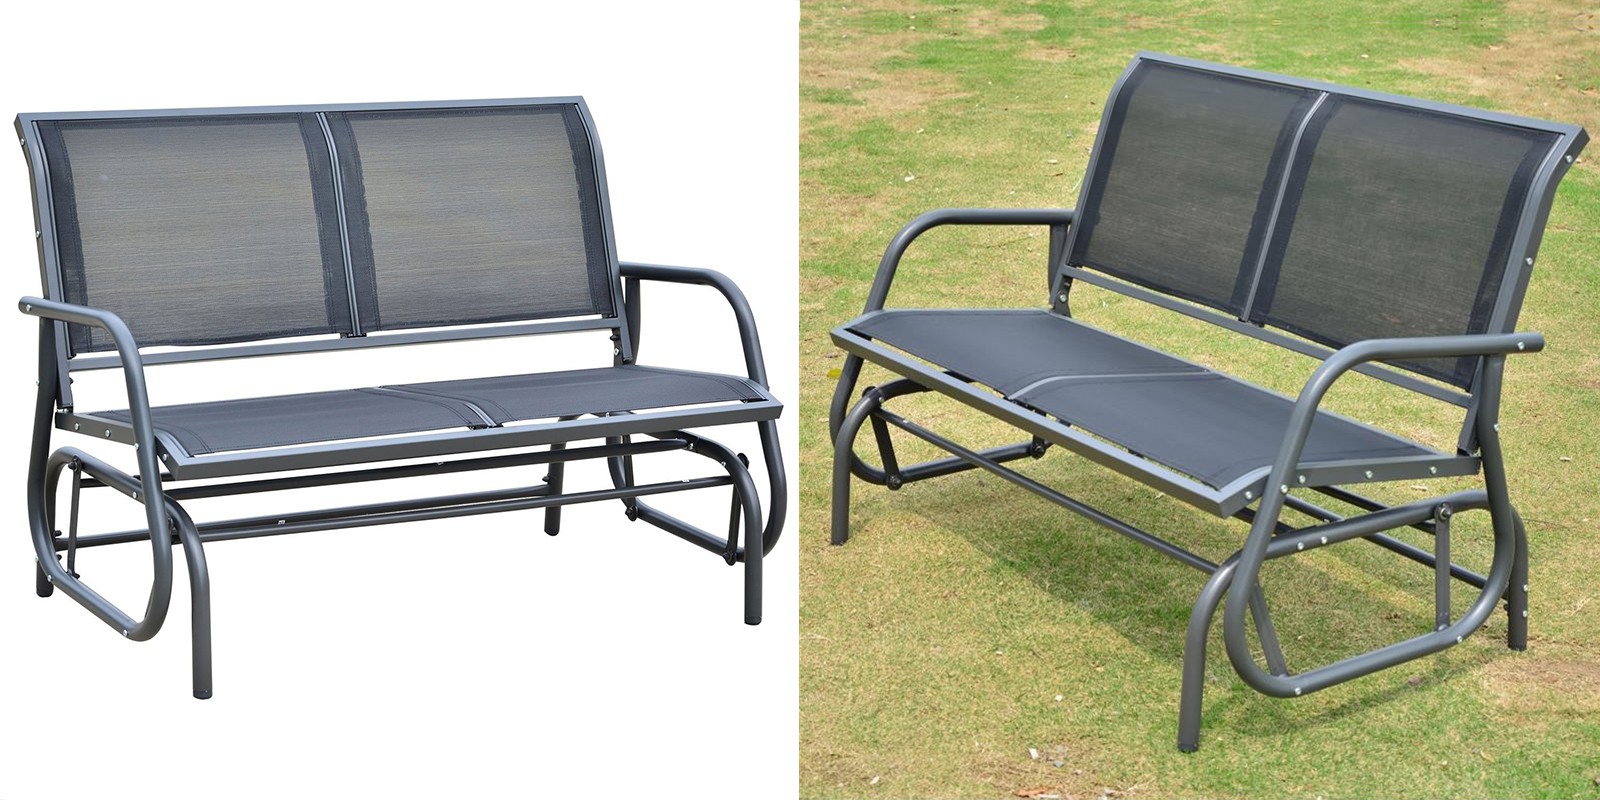 Patio Chair Outdoor Glider Bench Swing